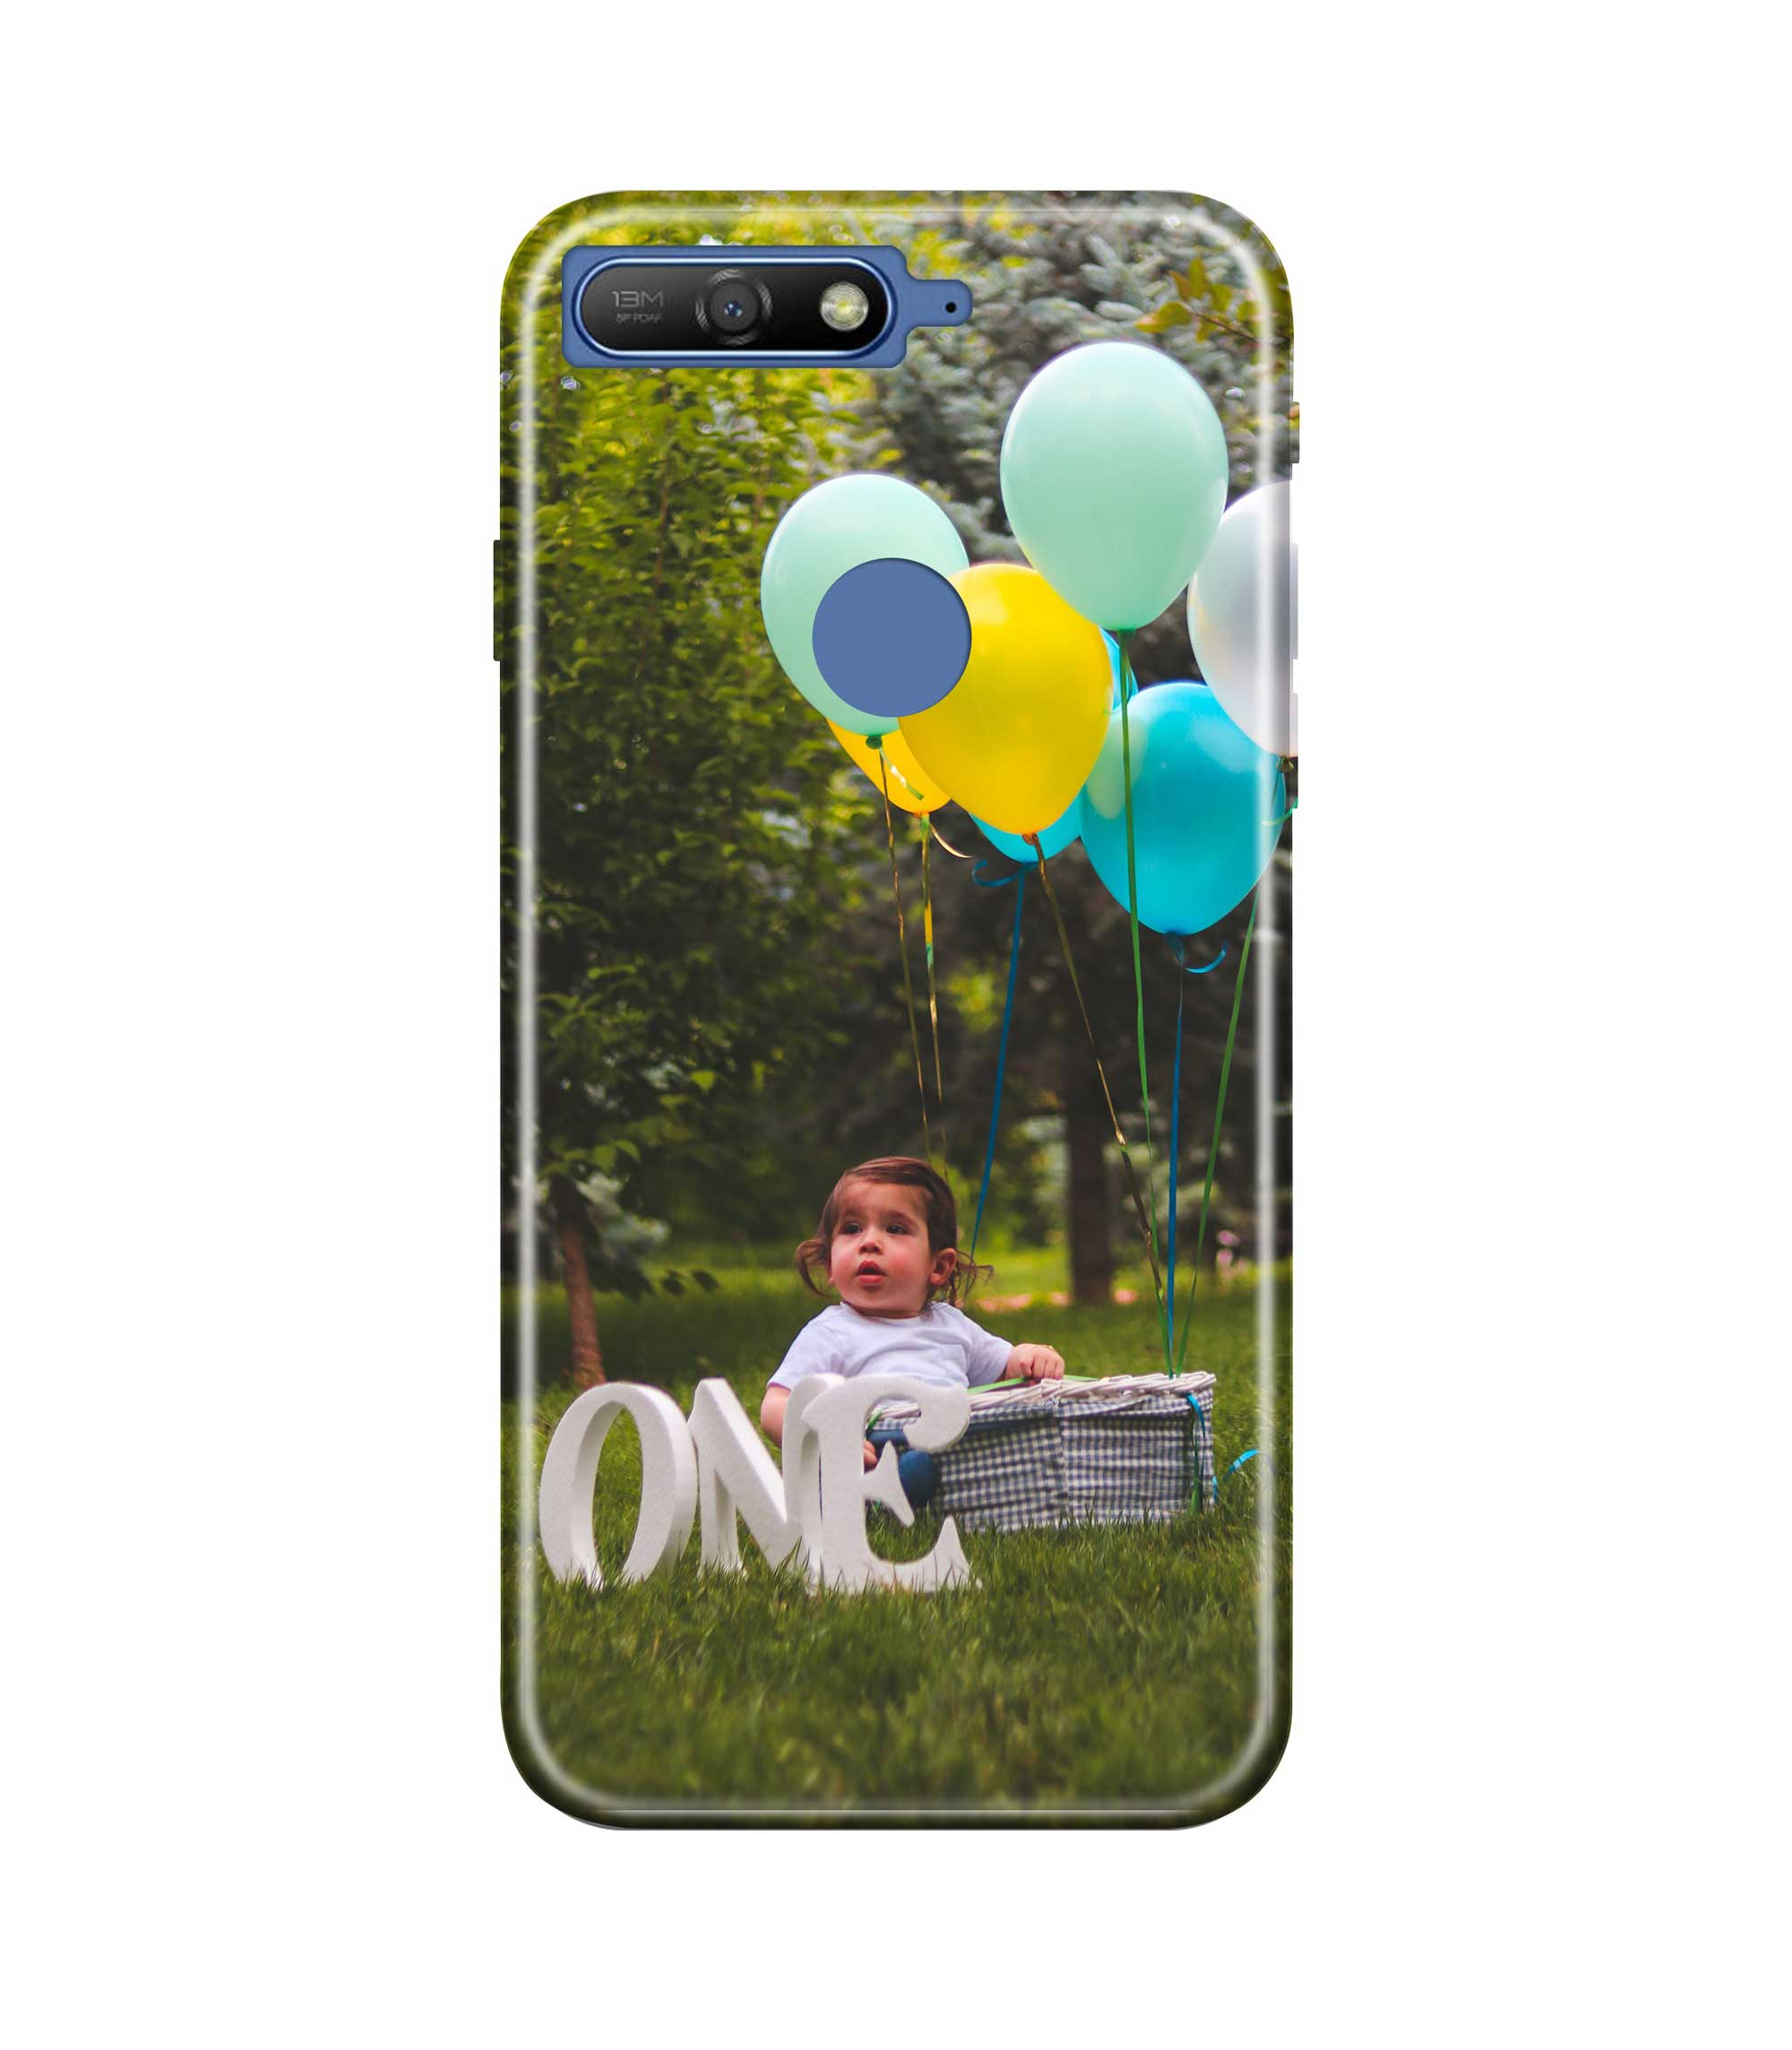 Personalised Case for Huawei Y7 2018